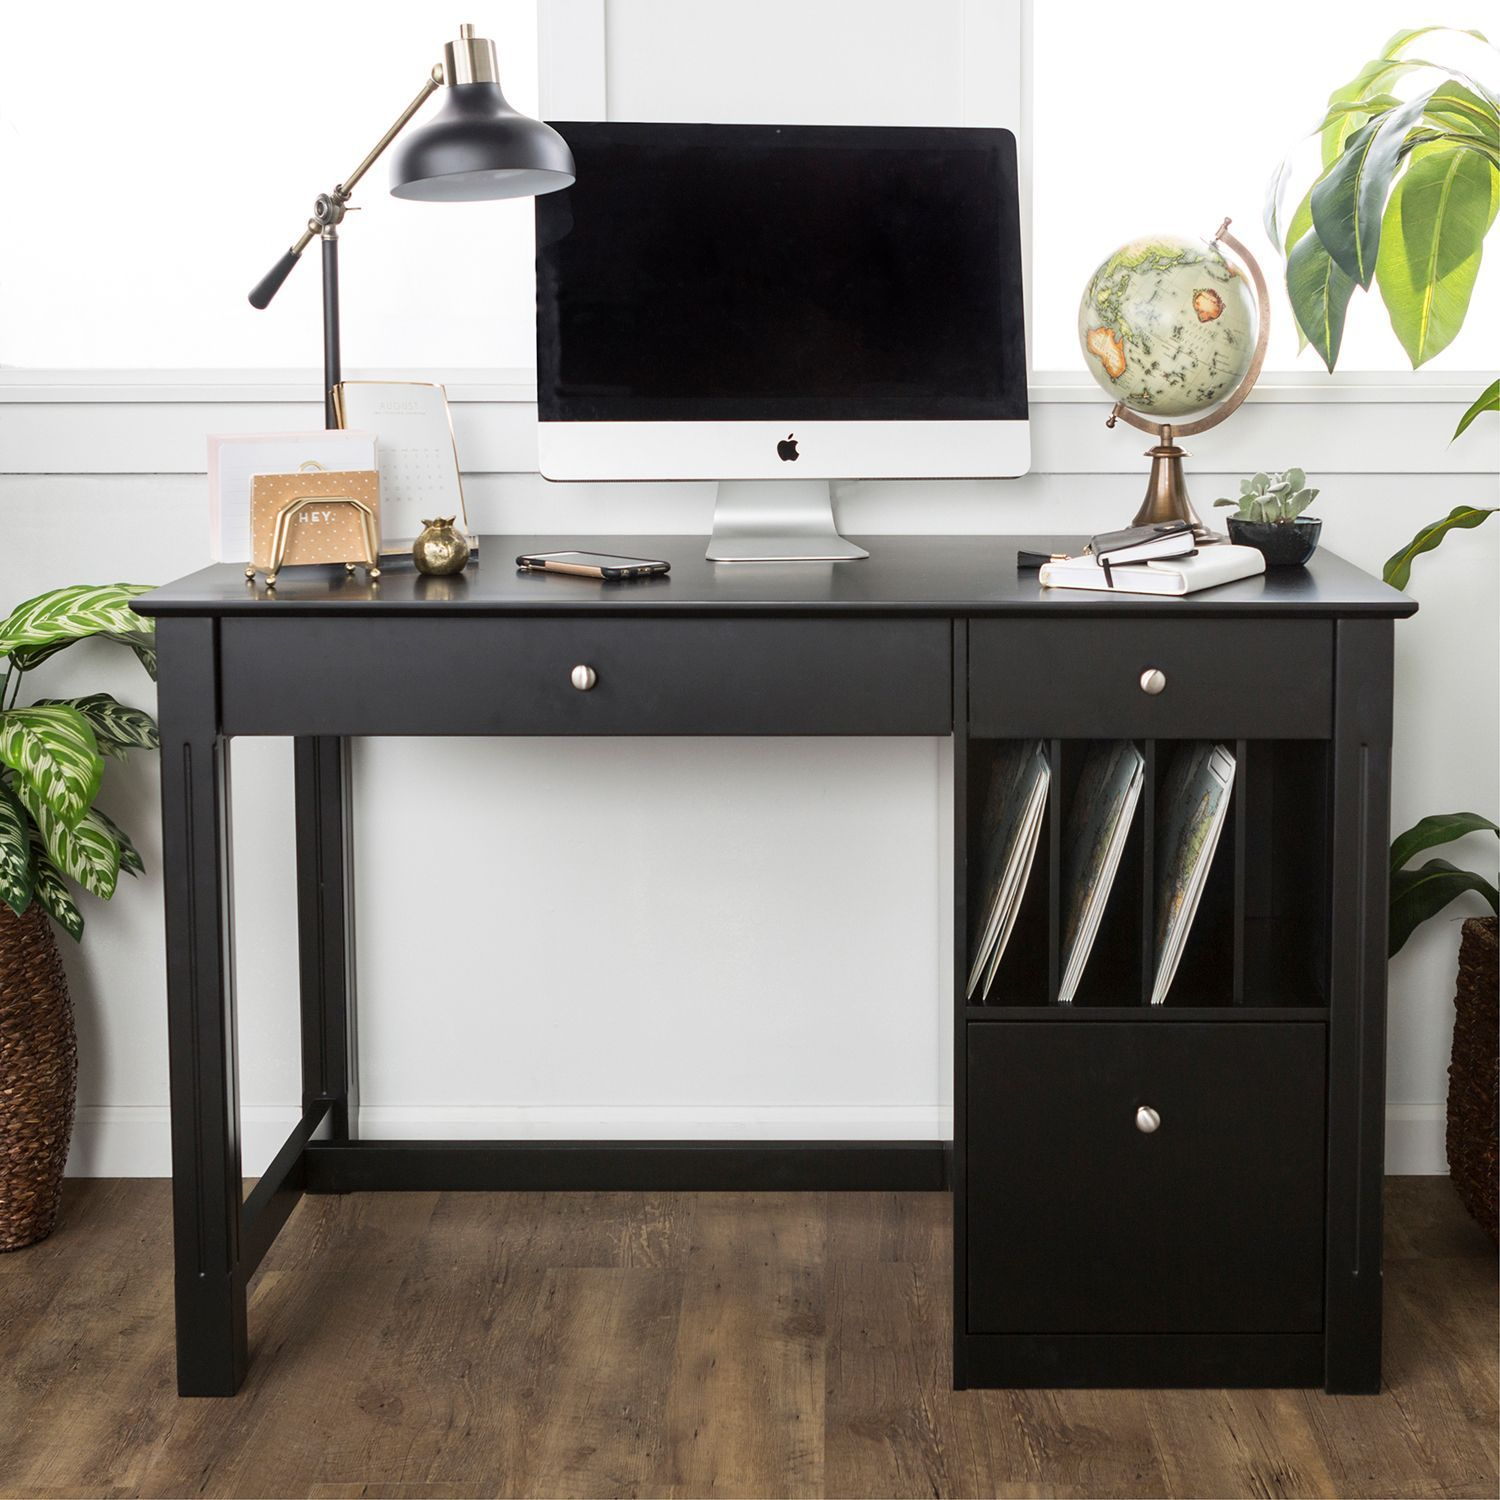 Black Deluxe Wood Storage Computer Desk Home office